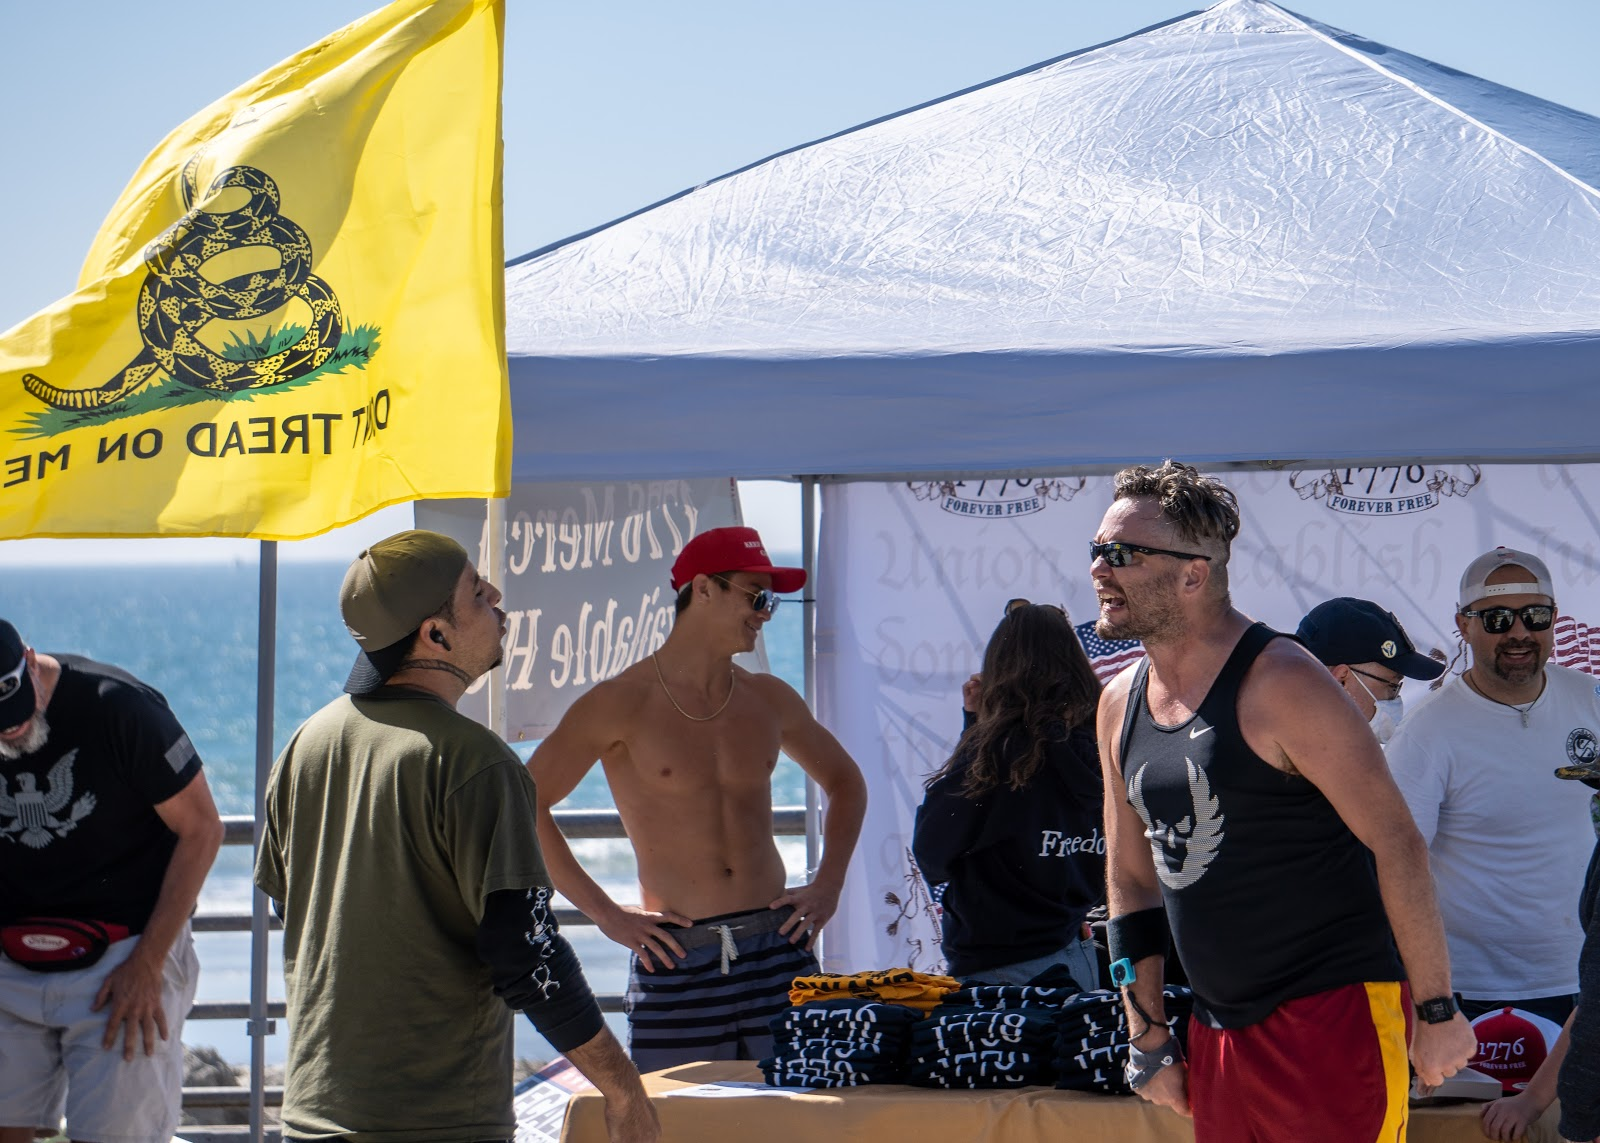 In the foreground there are two men who appear to be shouting aggressively at eachother, neither has a mask on, and the one on the left is wearing a matching olive green hat and t shirt with a long sleeve black shirt underneath. he has a band neck tattoo. the other man is wearing a black tanktop and running shorts, with sunglasses on. behind them there is a dont tread on me flag, and a pop up tent with what appears to be merch, and other maskless people milling about.